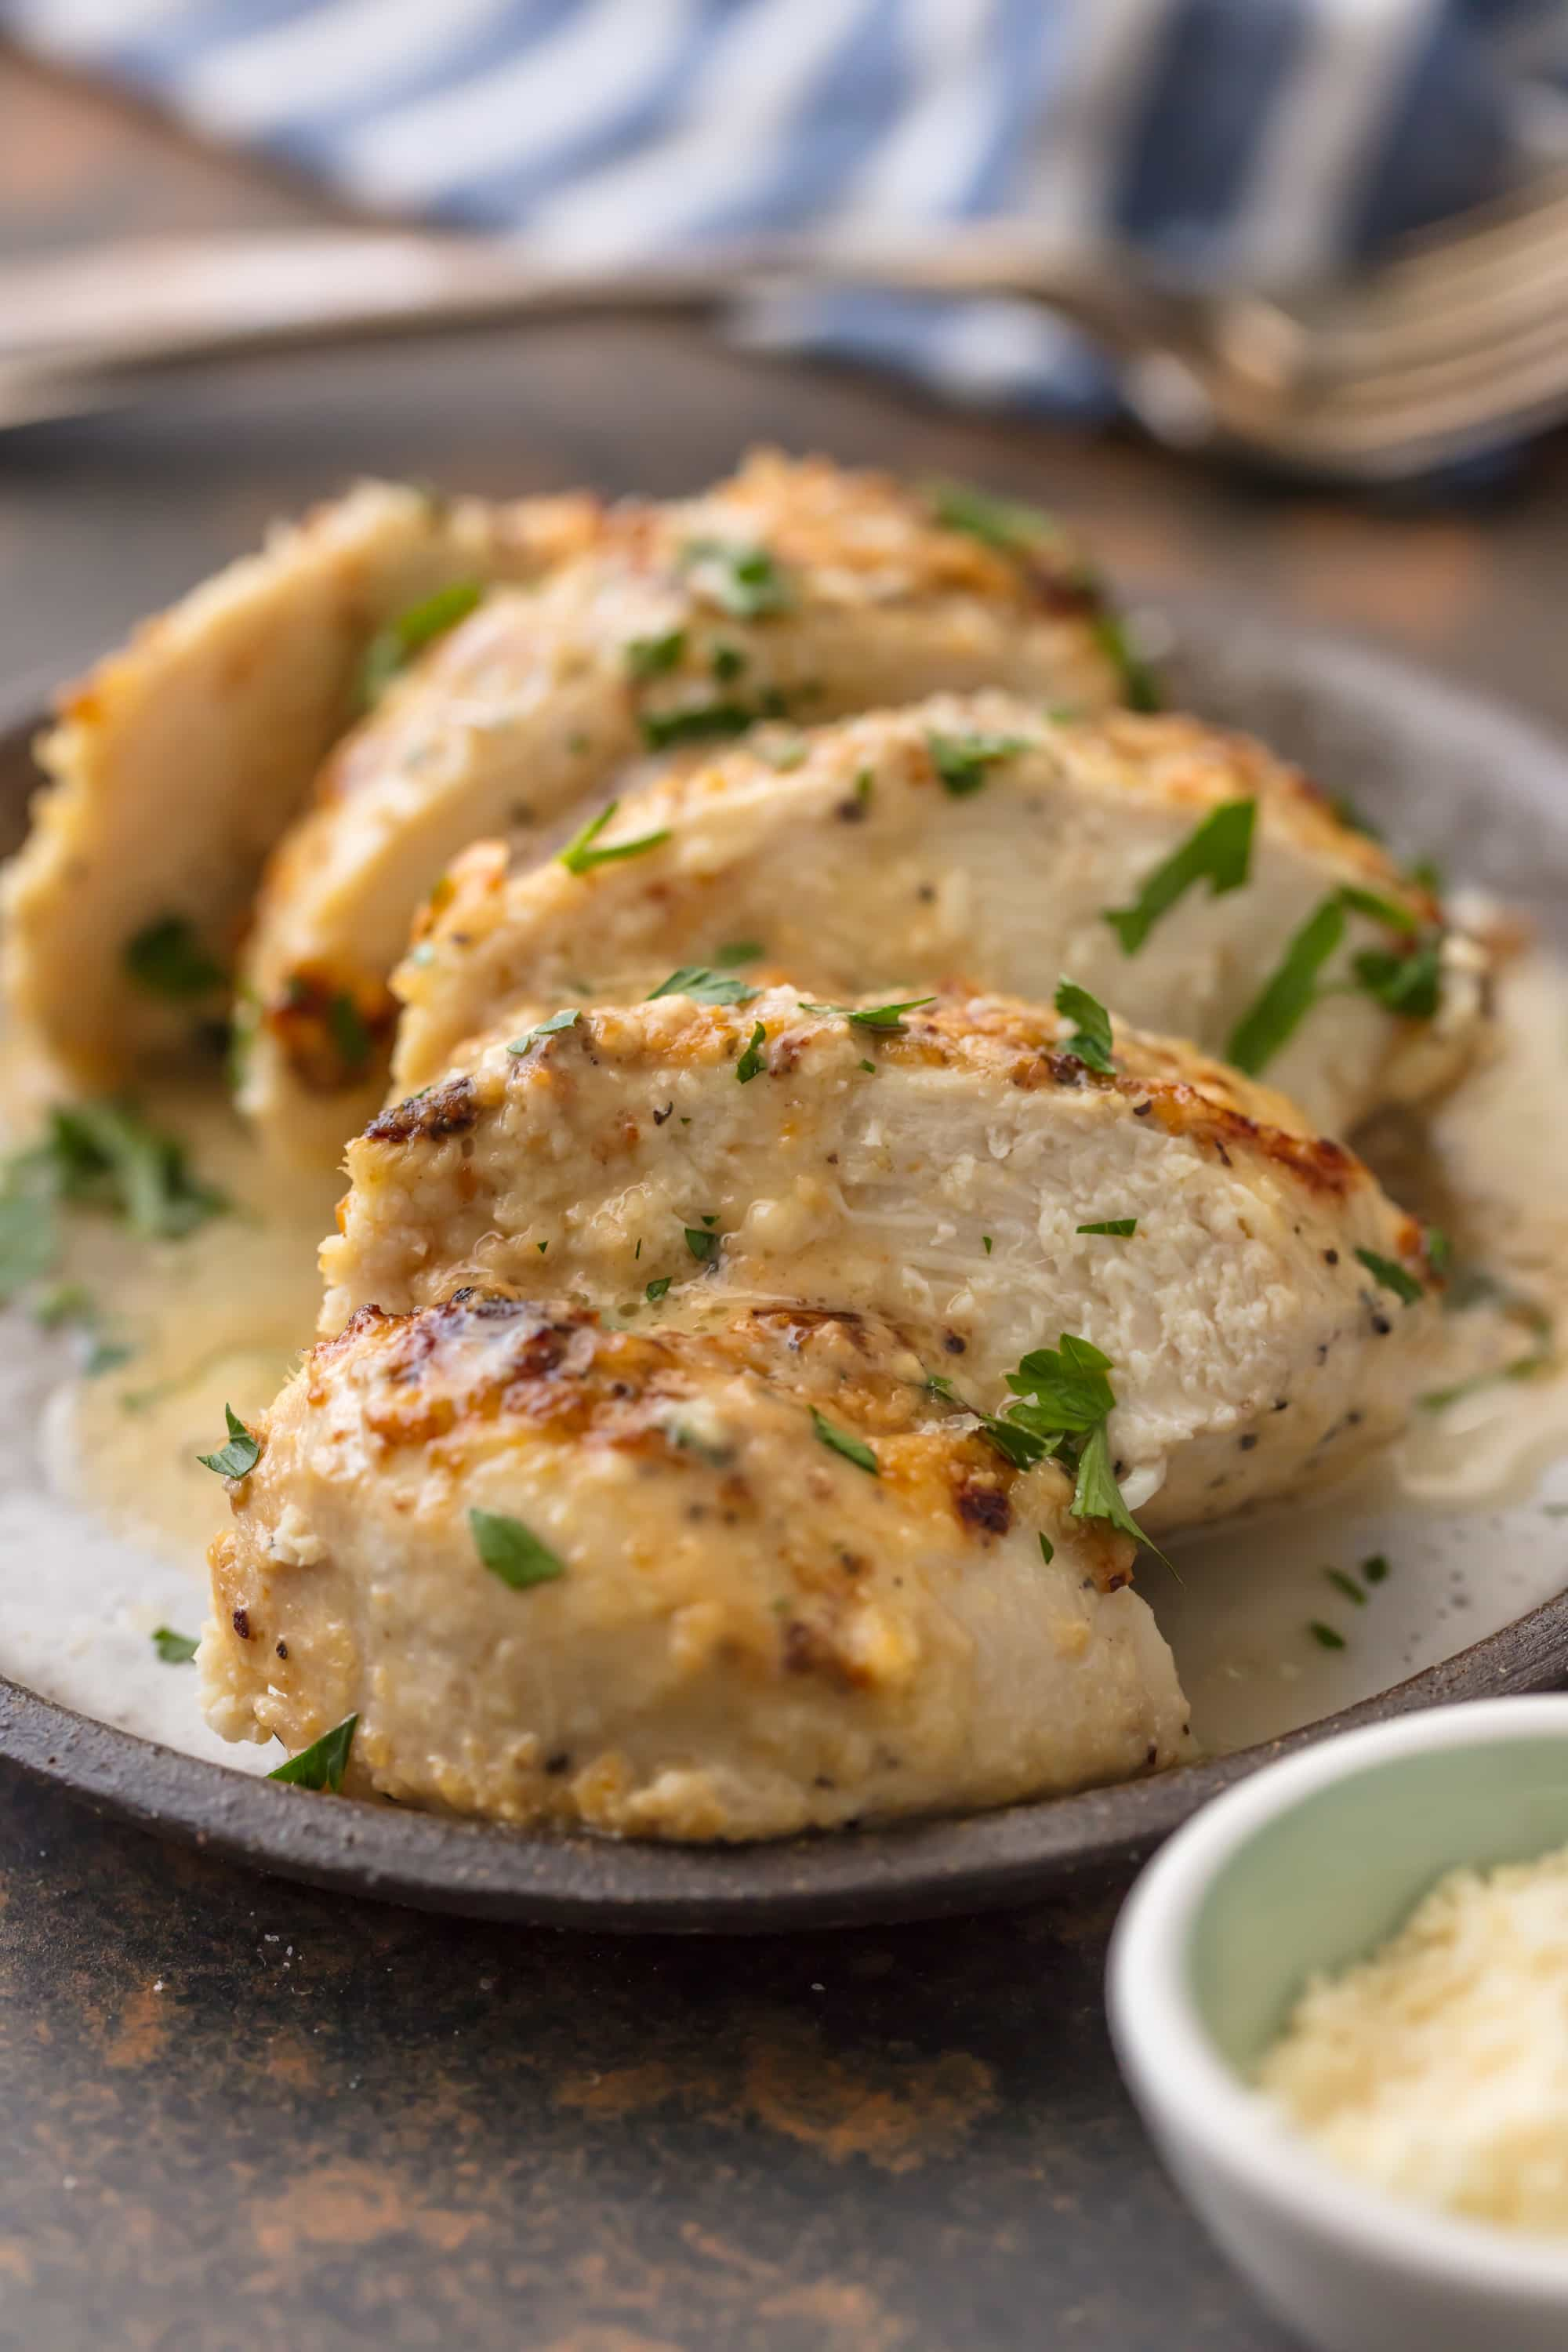 This MELT IN YOUR MOUTH CAESAR CHICKEN is made with only 3 ingredients (say WHAT?!) and is oh so tender and delicious. Easiest tastiest weeknight dinner ever.